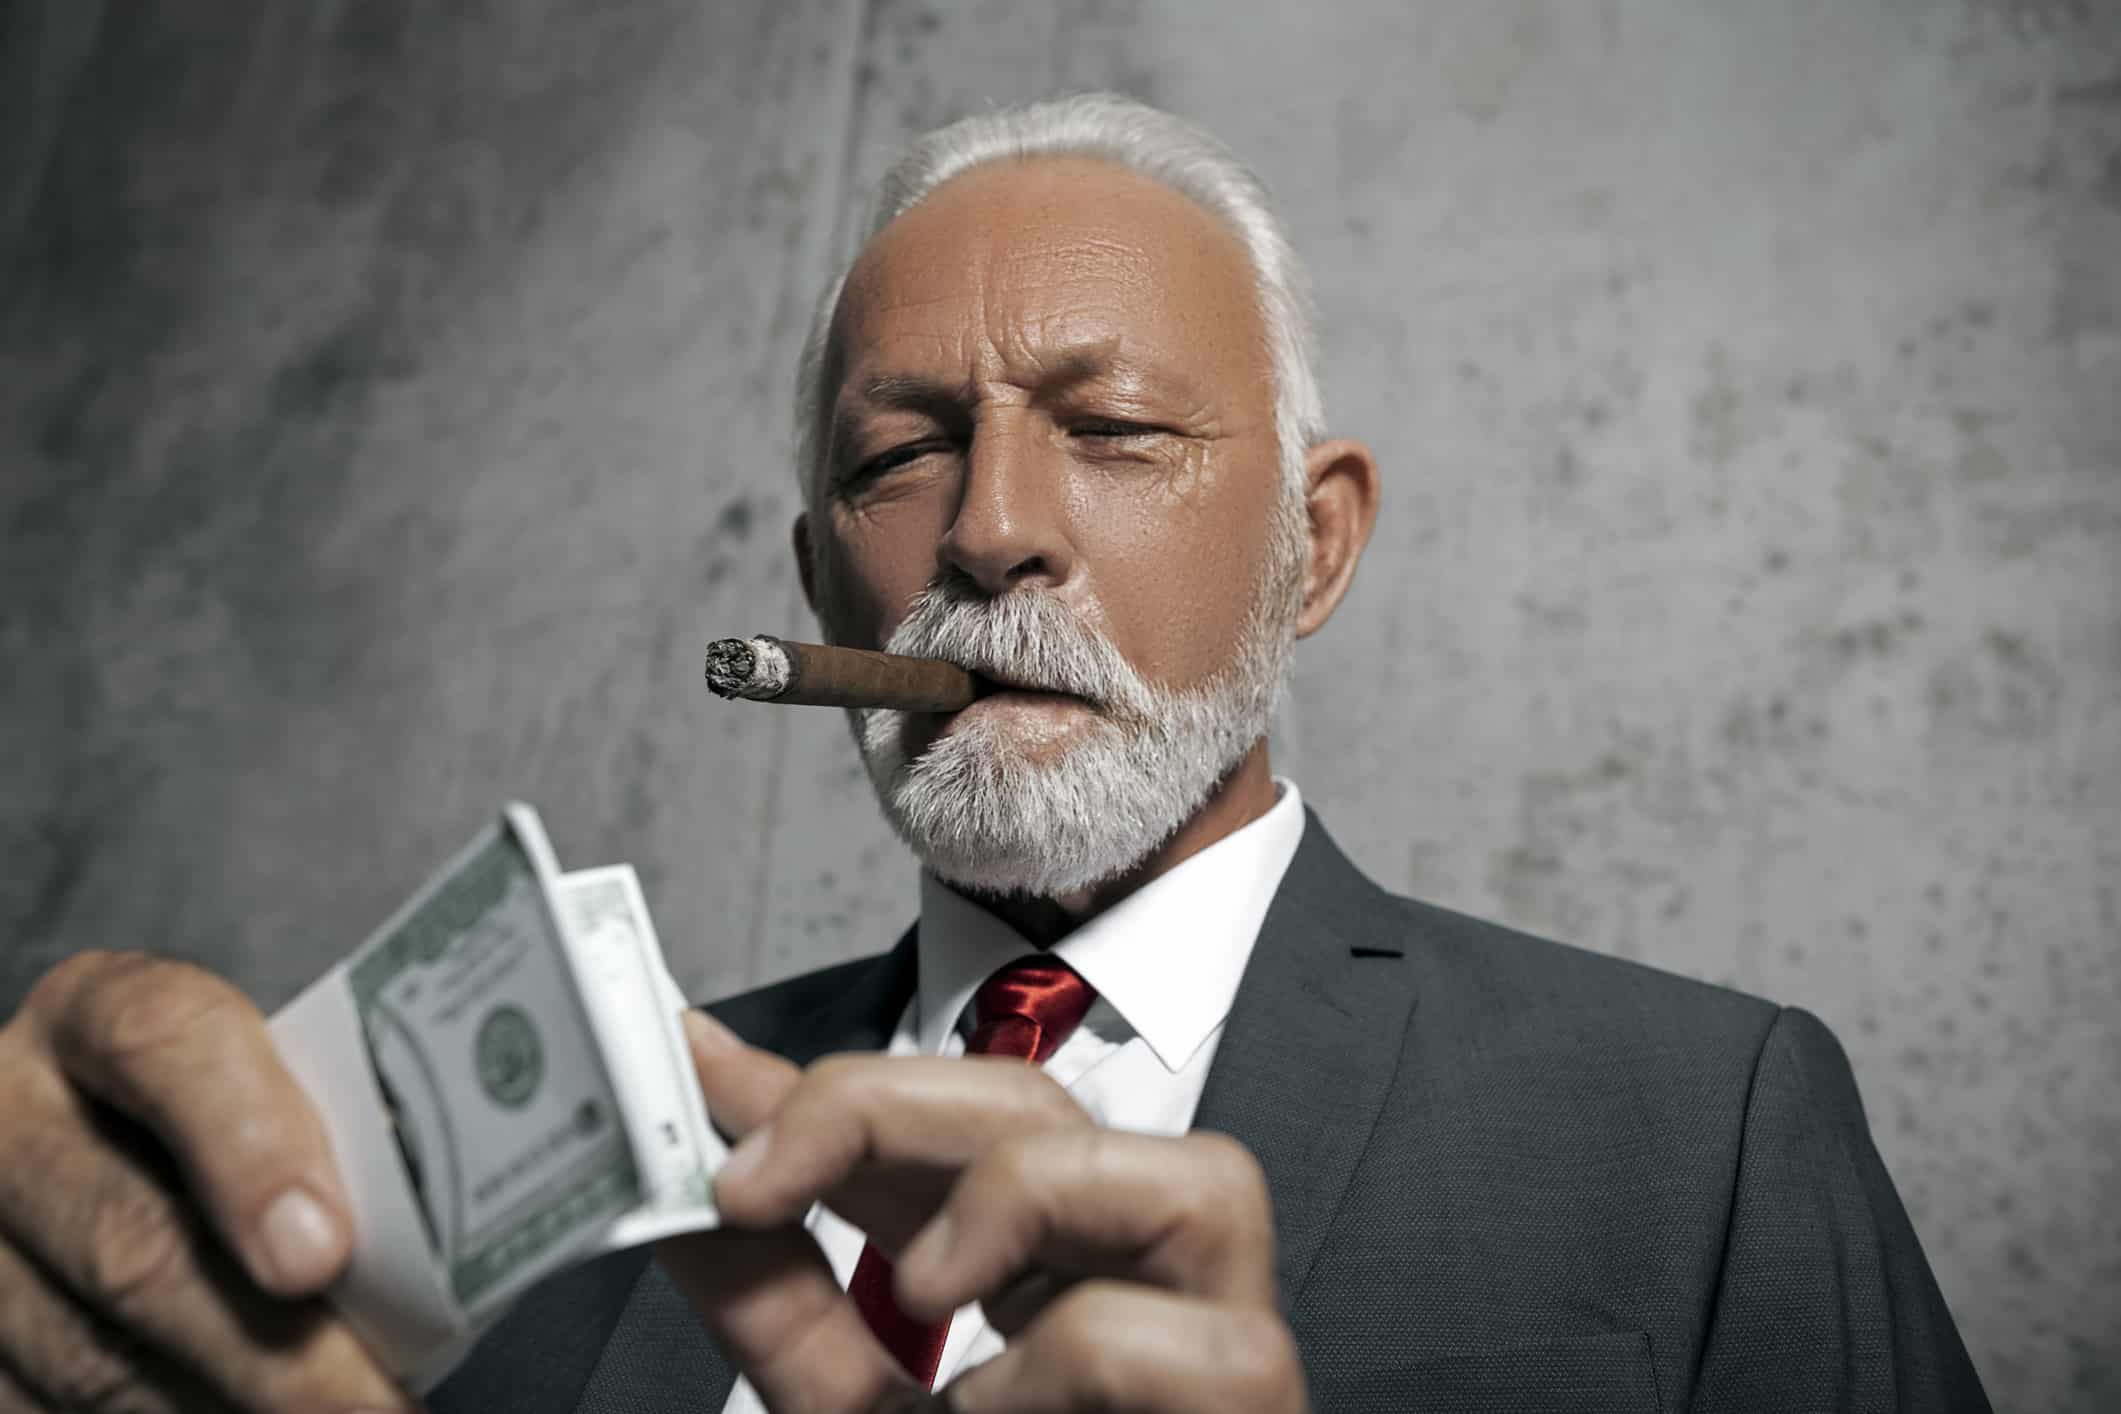 business man with cigar, counting cash, CEO, business executive